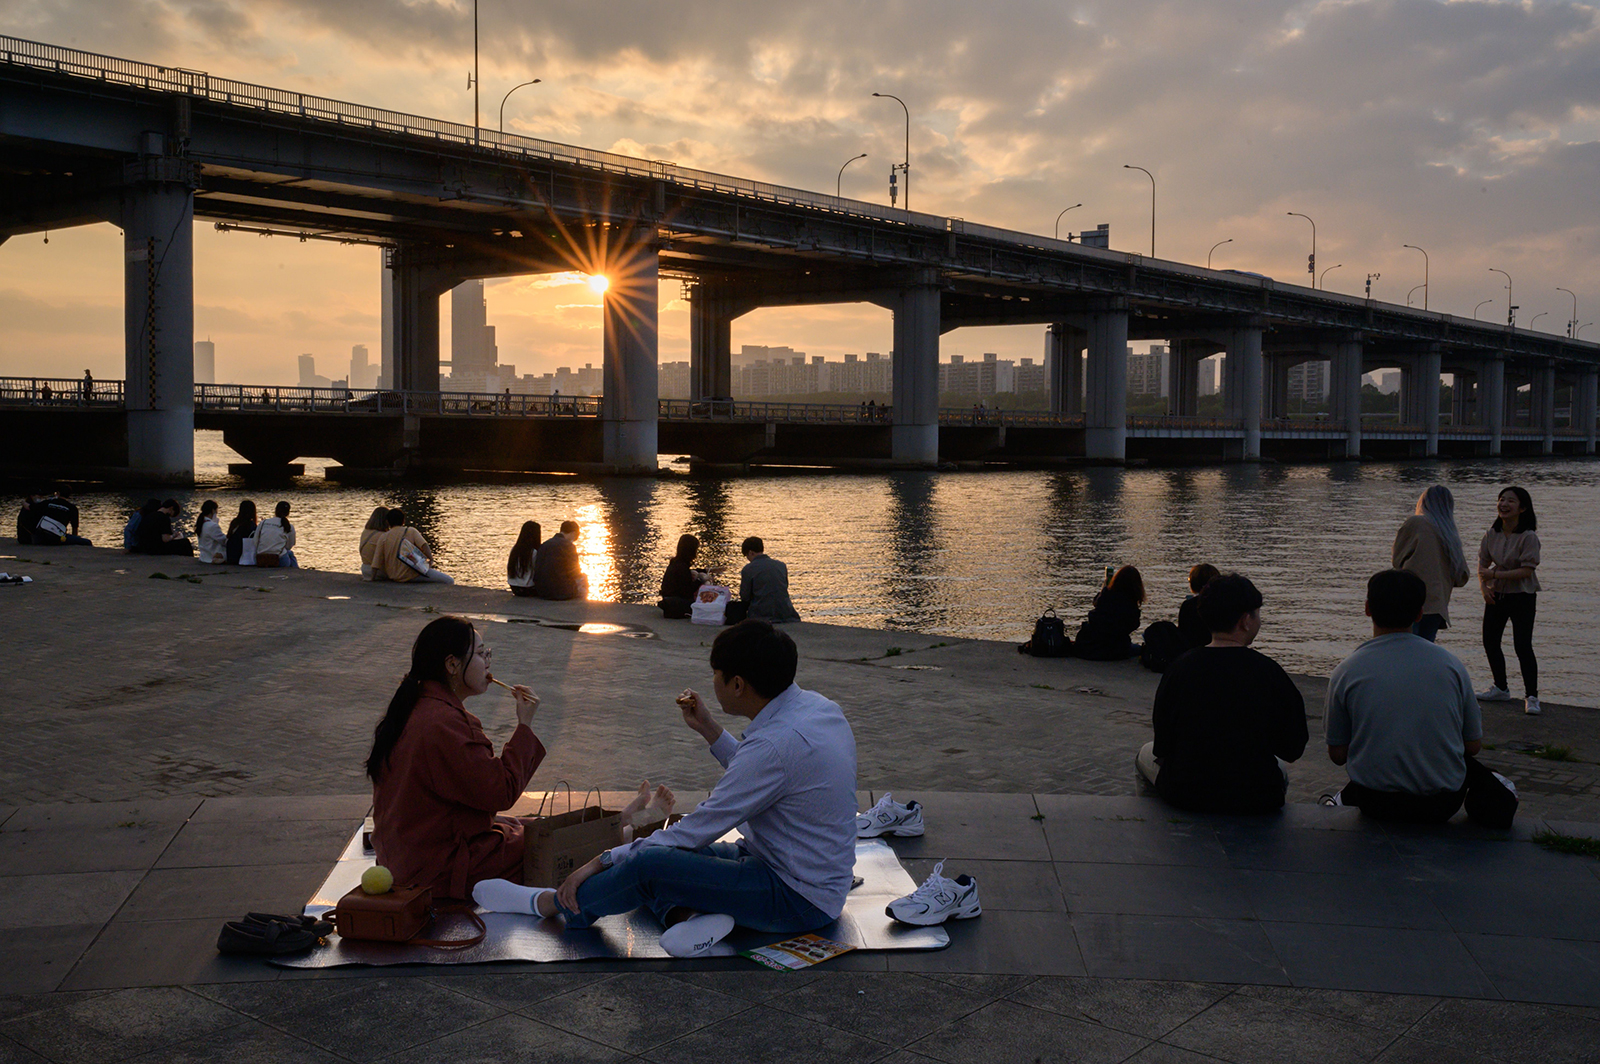 People sit before the city skyline and Han River in Seoul, South Korea, on May 24.